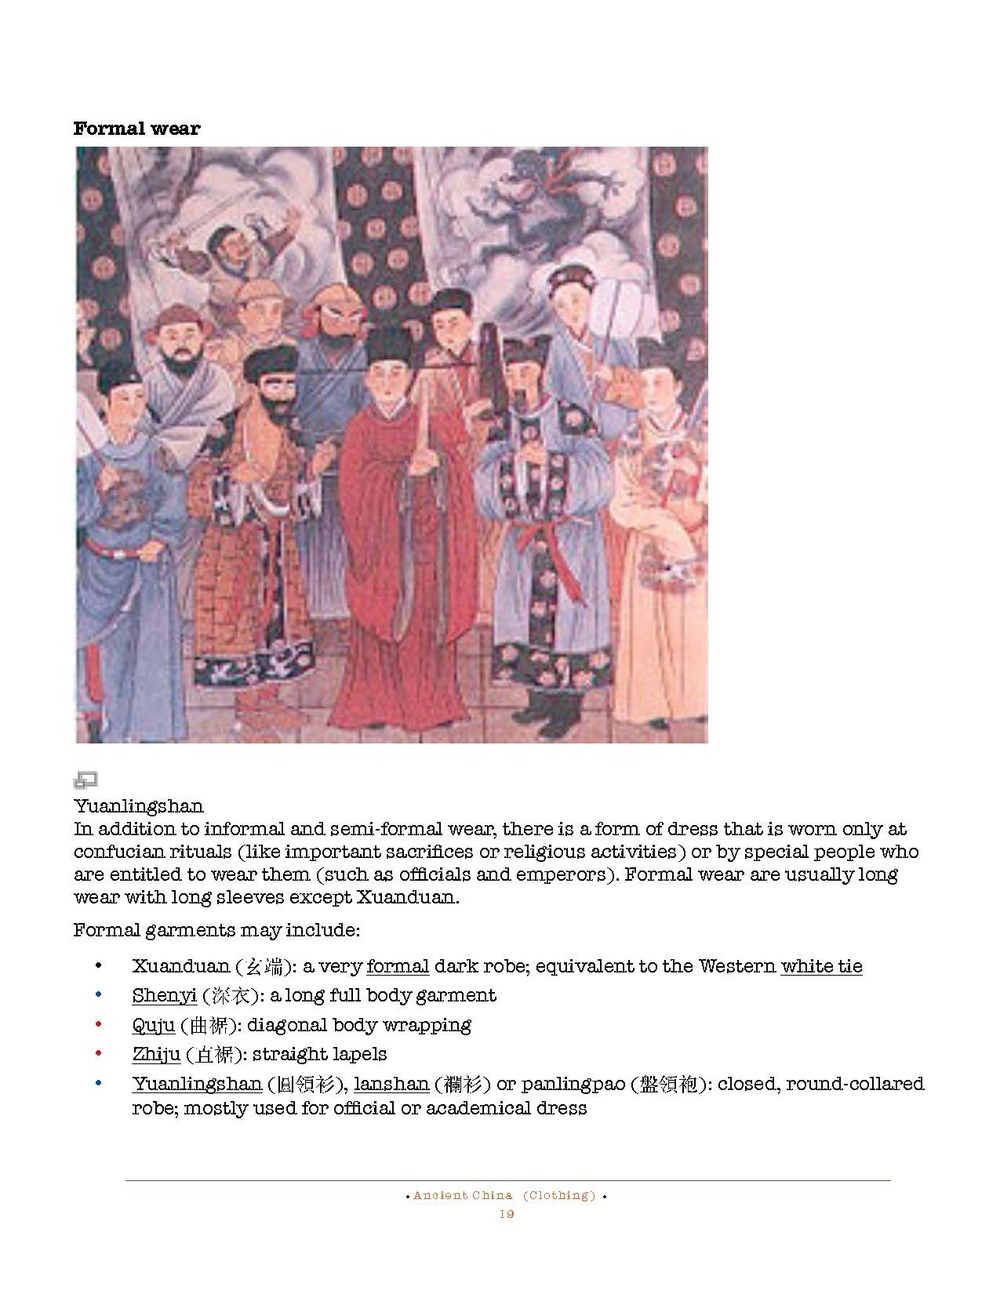 HOCE- Ancient China Notes (clothing)_Page_19.jpg